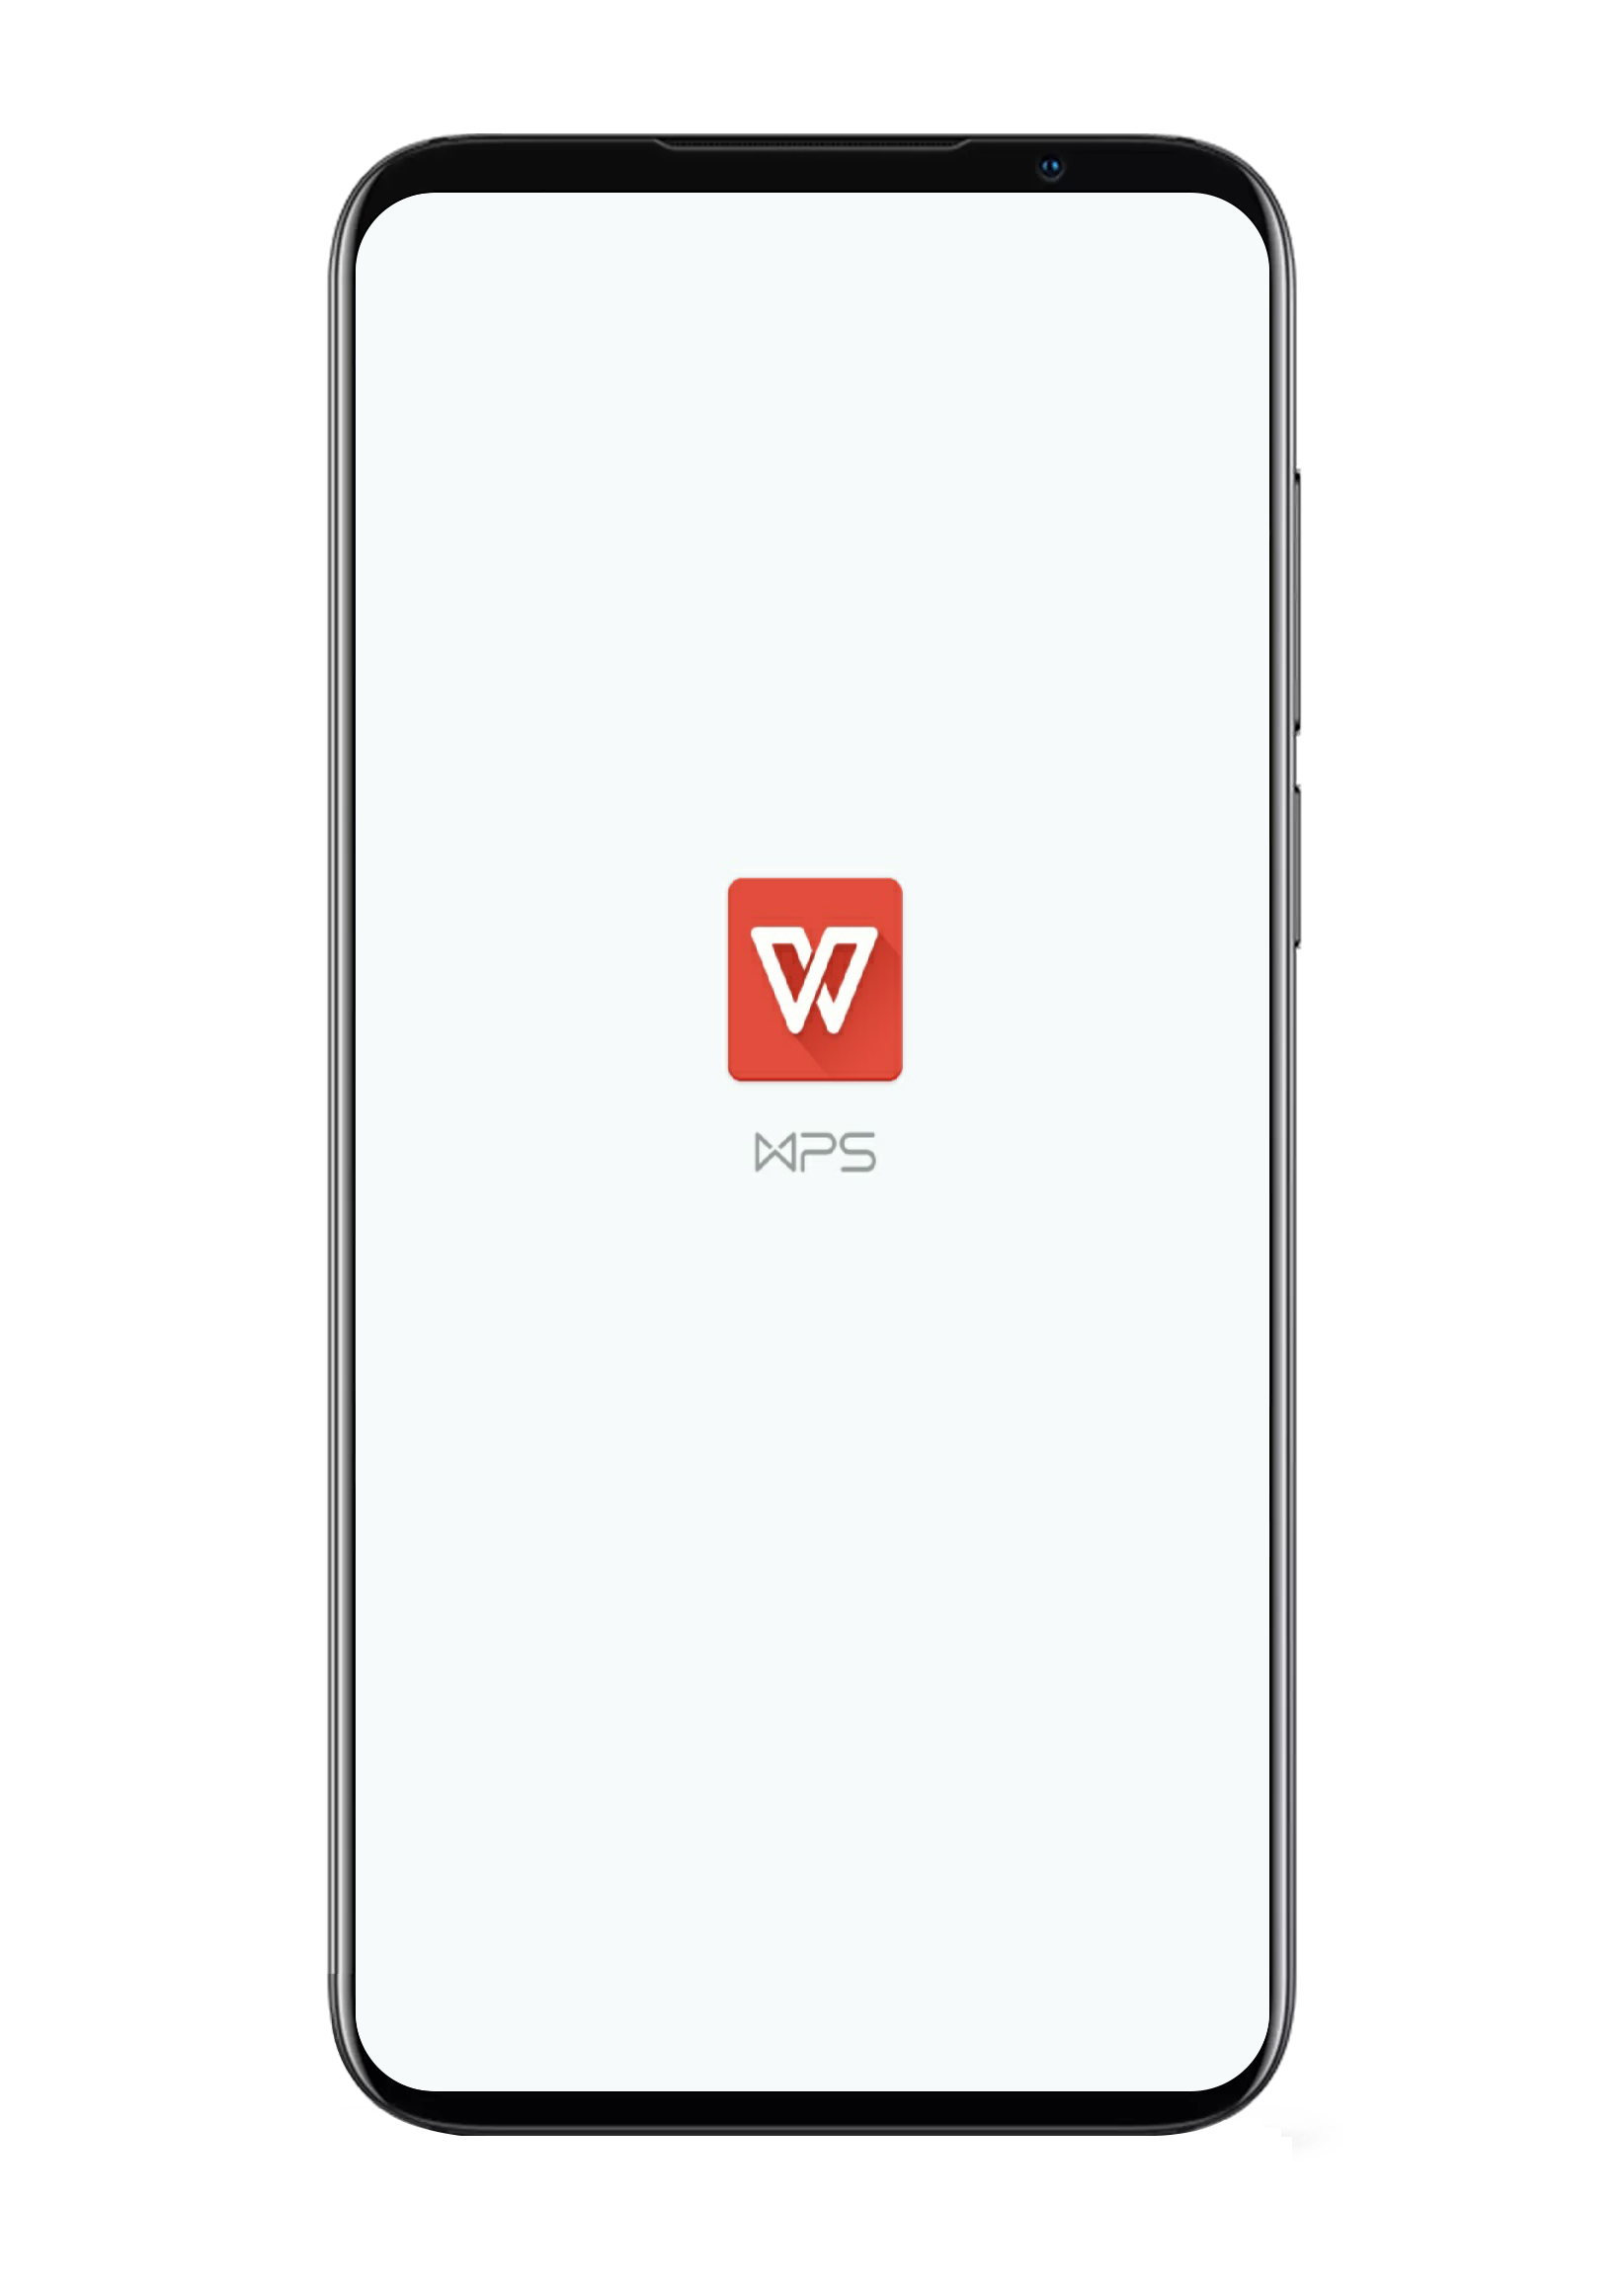 【分享】WPS  office  9.5.5